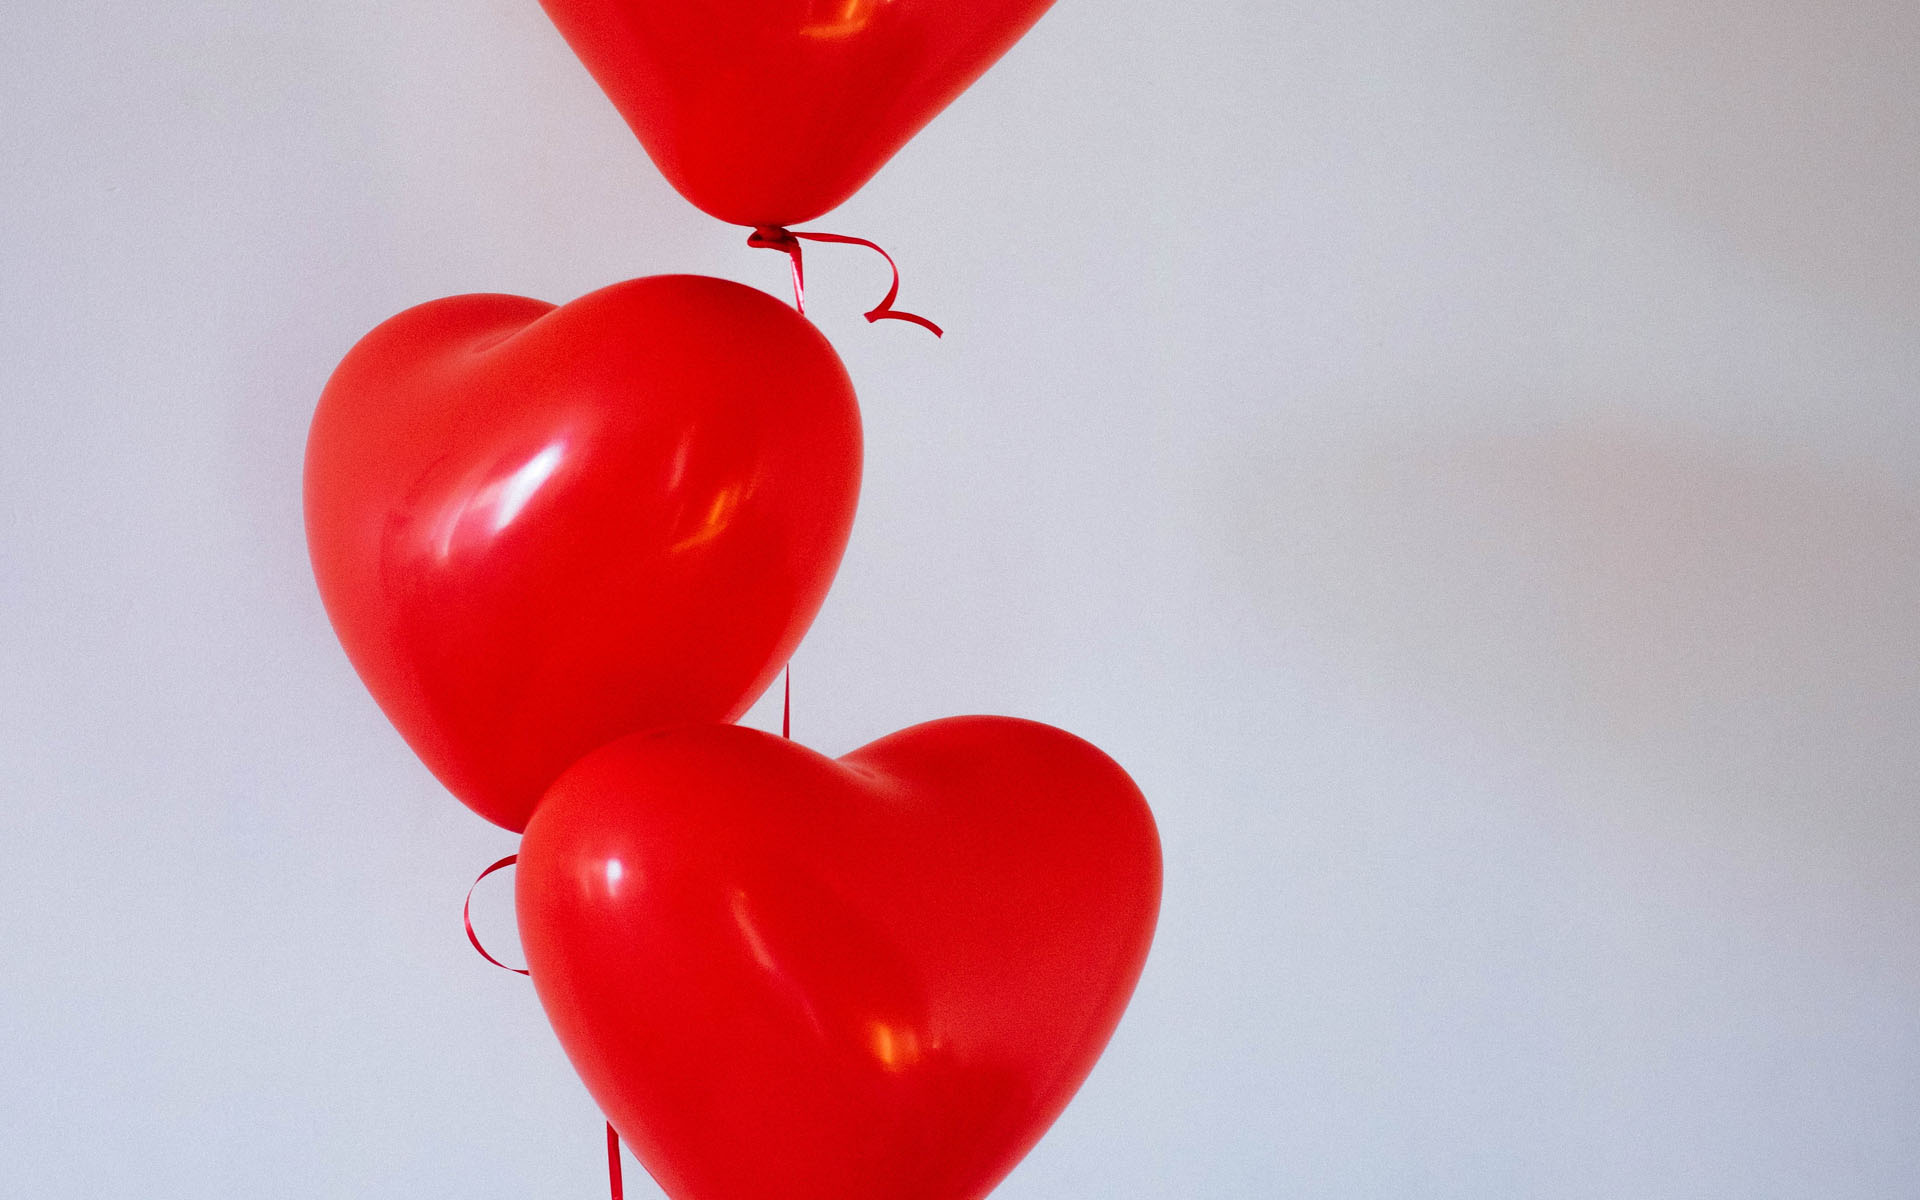 Red Heart Balloons Hd Wallpaper Hd Latest Wallpapers